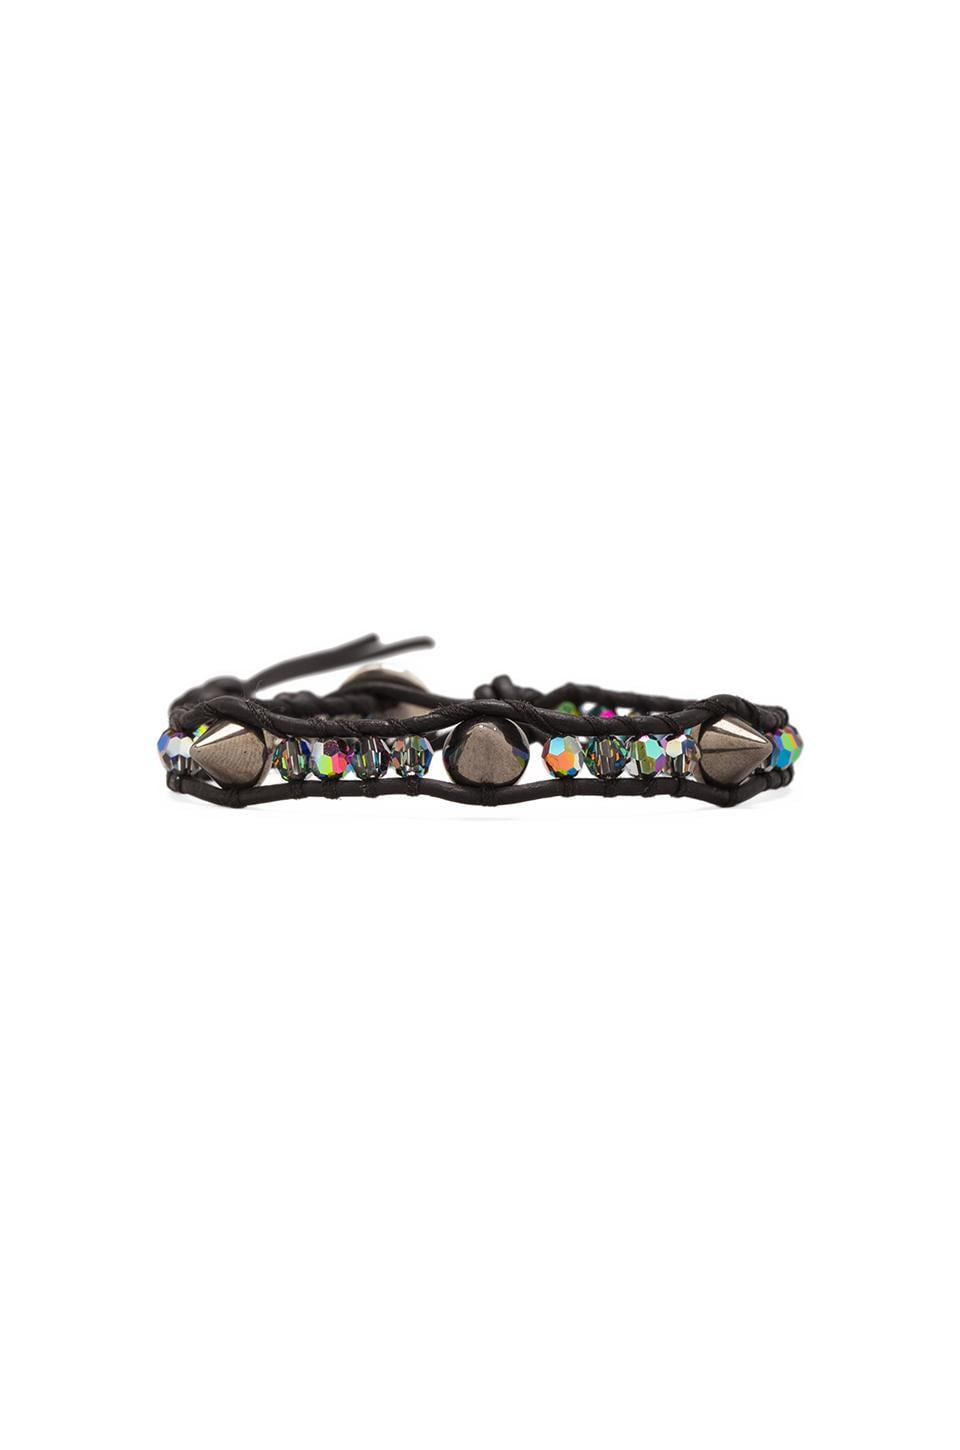 CHAN LUU Studs Bracelet in Crystal VM/Natural Black